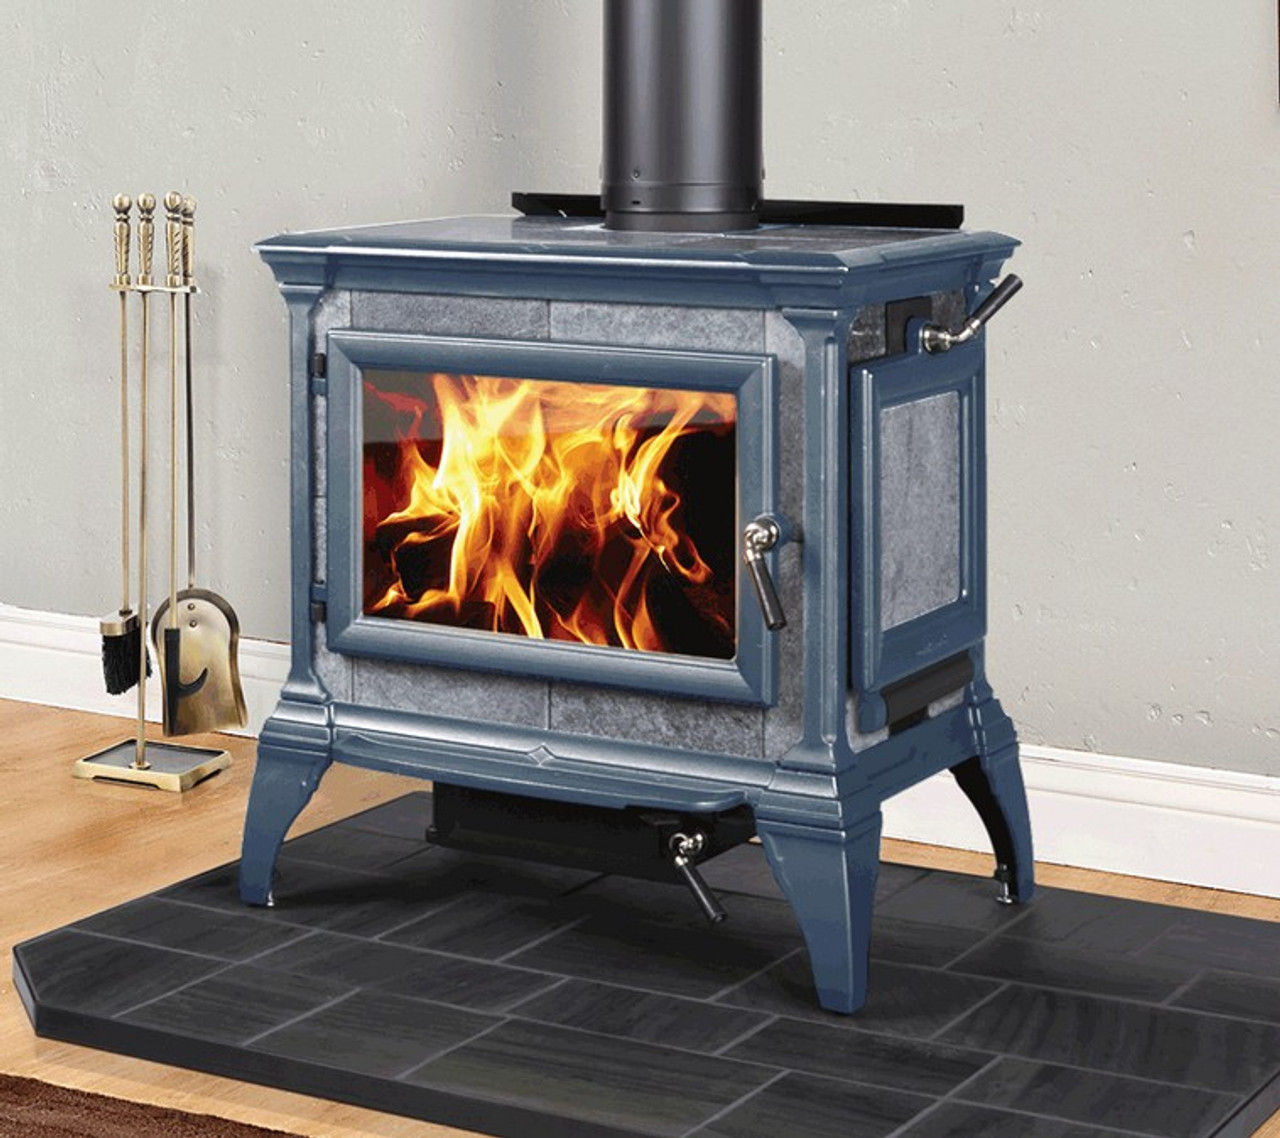 Hearthstone Heritage 8024 Wood Stove in Green